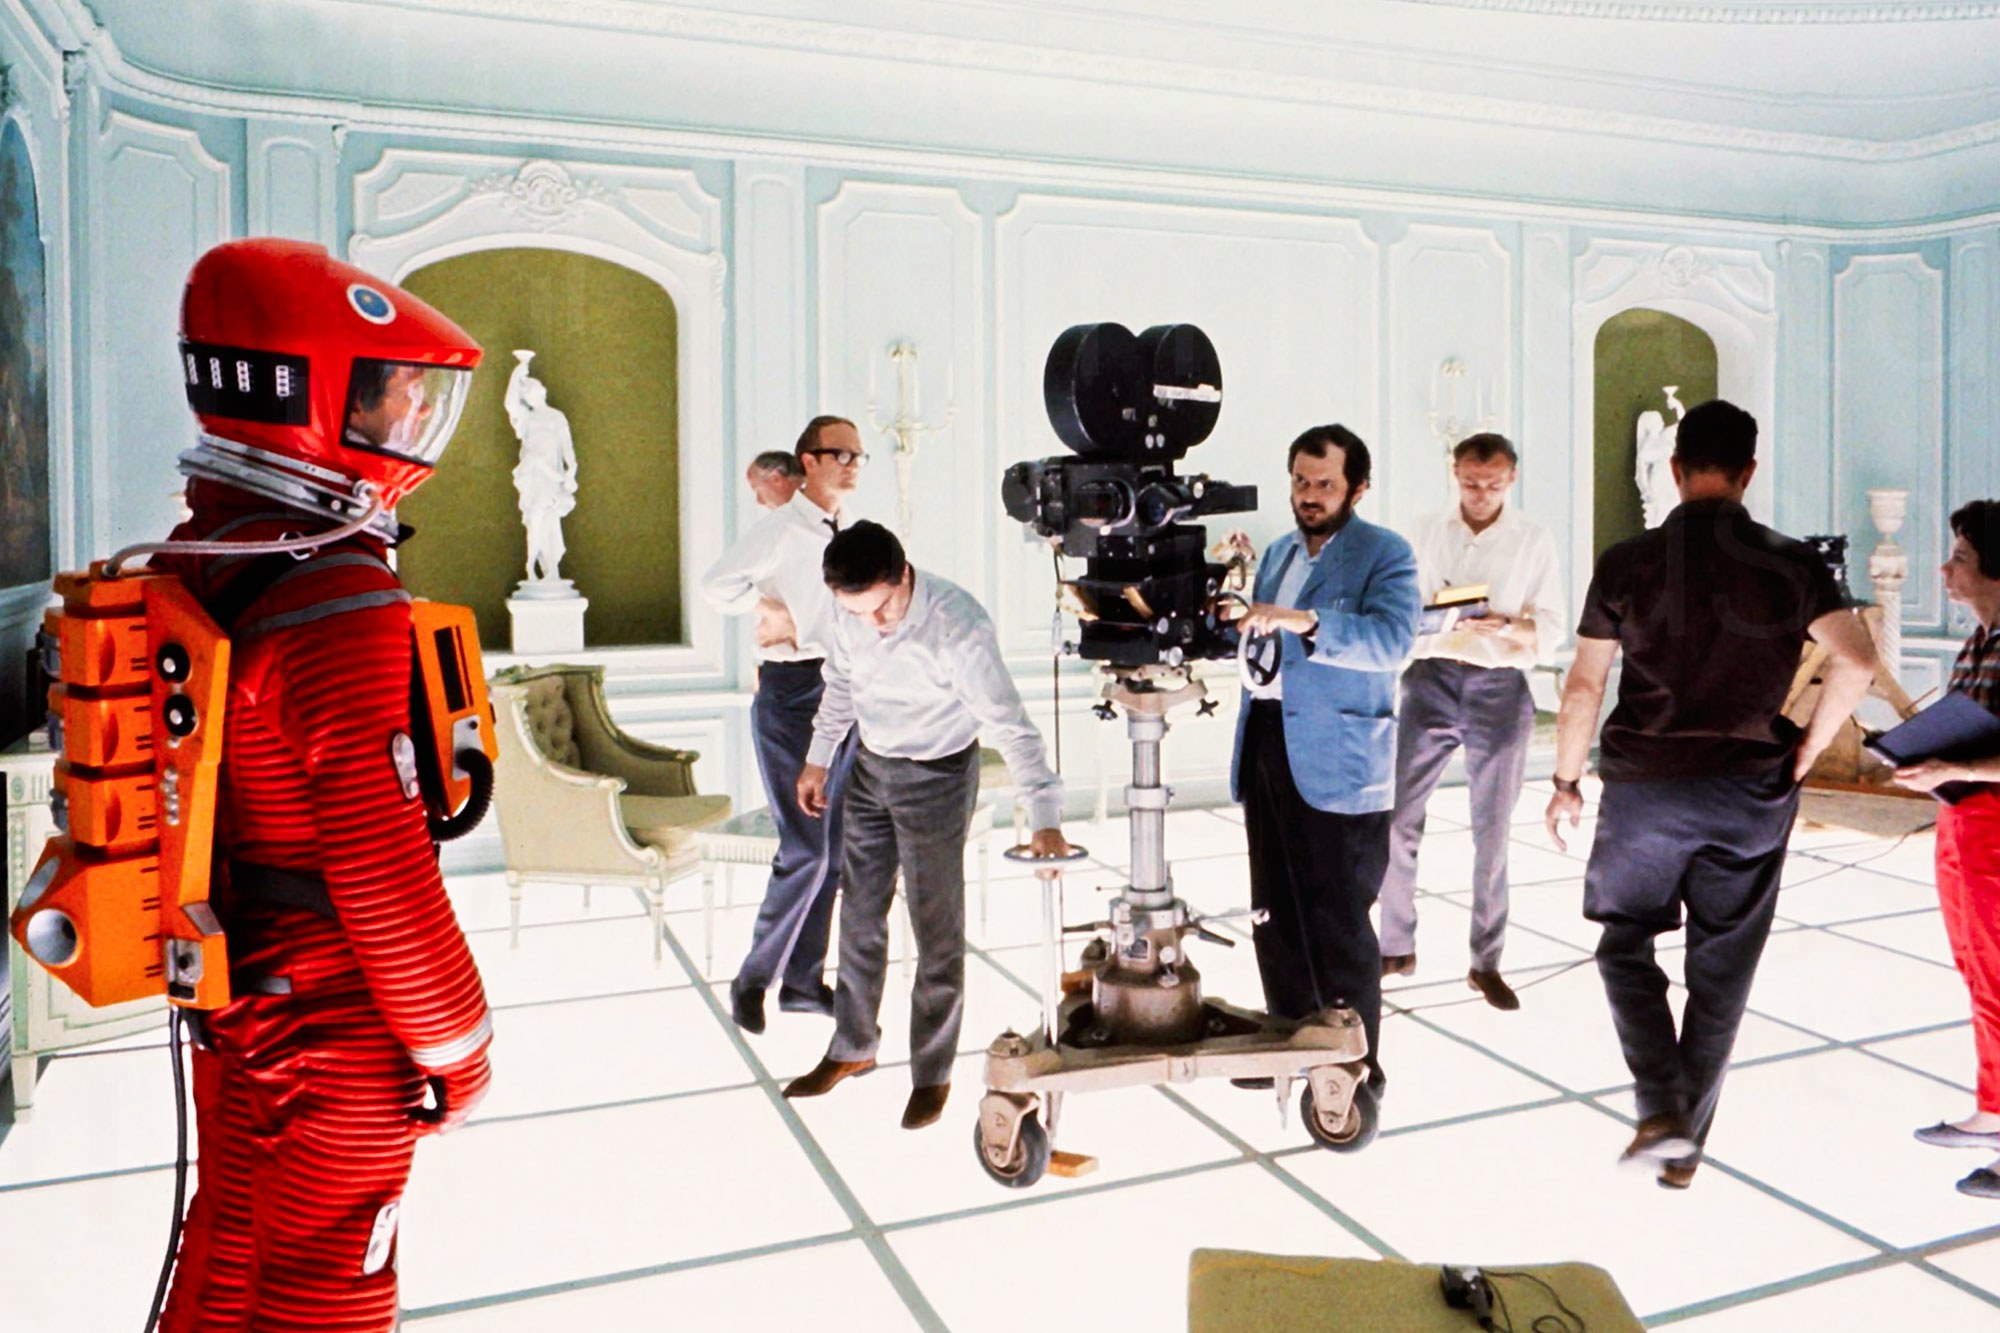 Stanley Kubrick on set of his 2001: A Space Odyssey